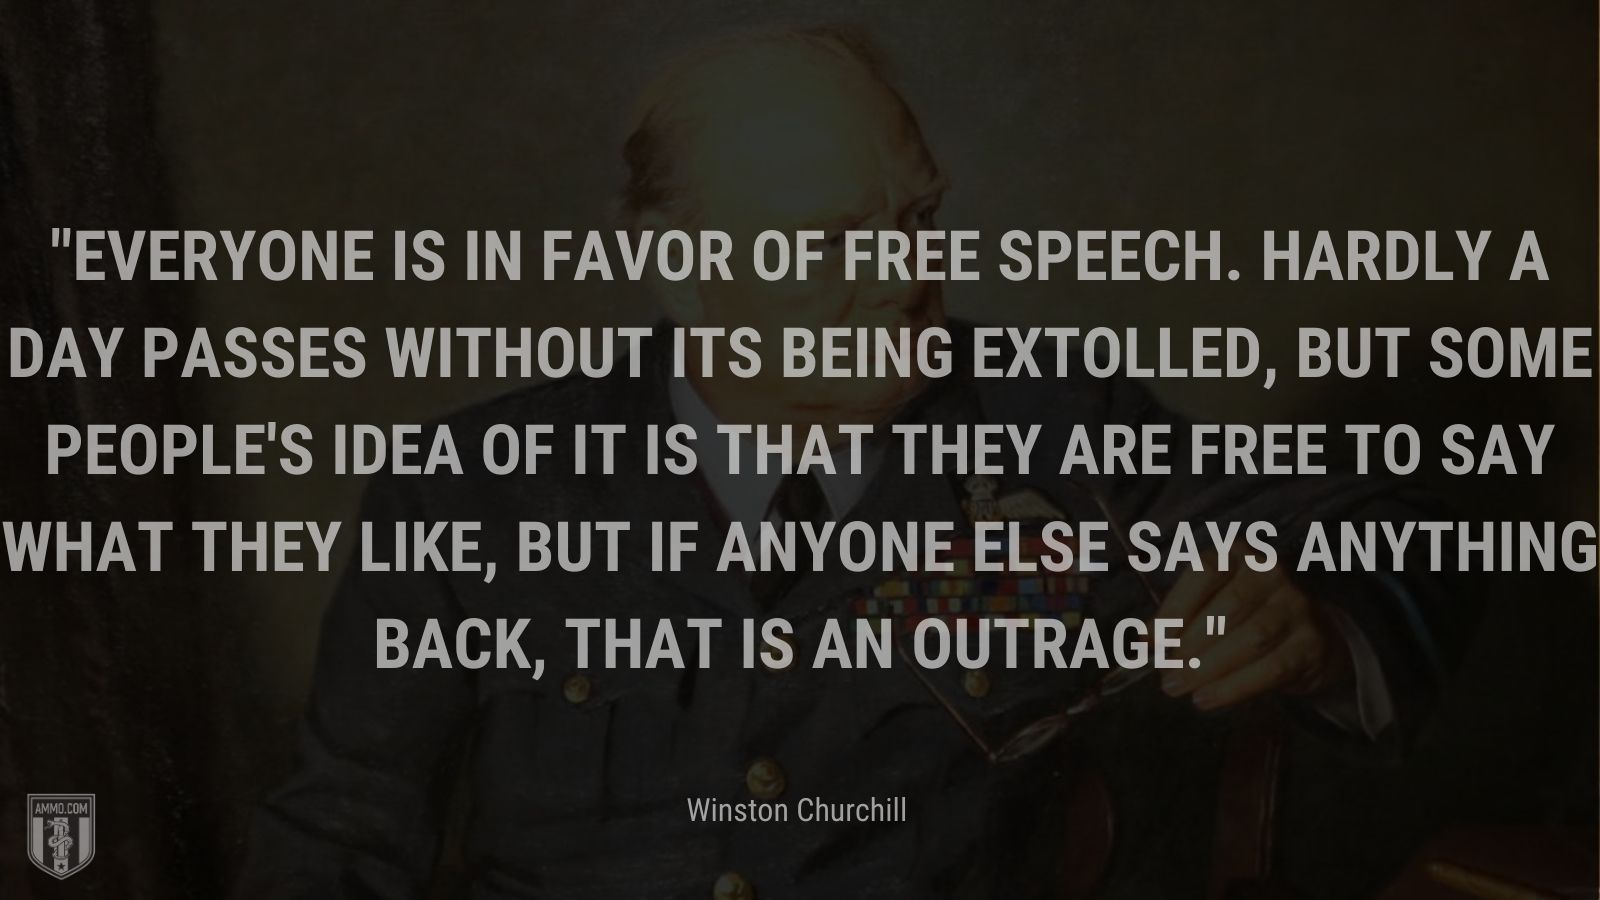 Everyone is in favor of free speech. Hardly a day passes without its being extolled, but some people's idea of it is that they are free to say what they like, but if anyone else says anything back, that is an outrage.